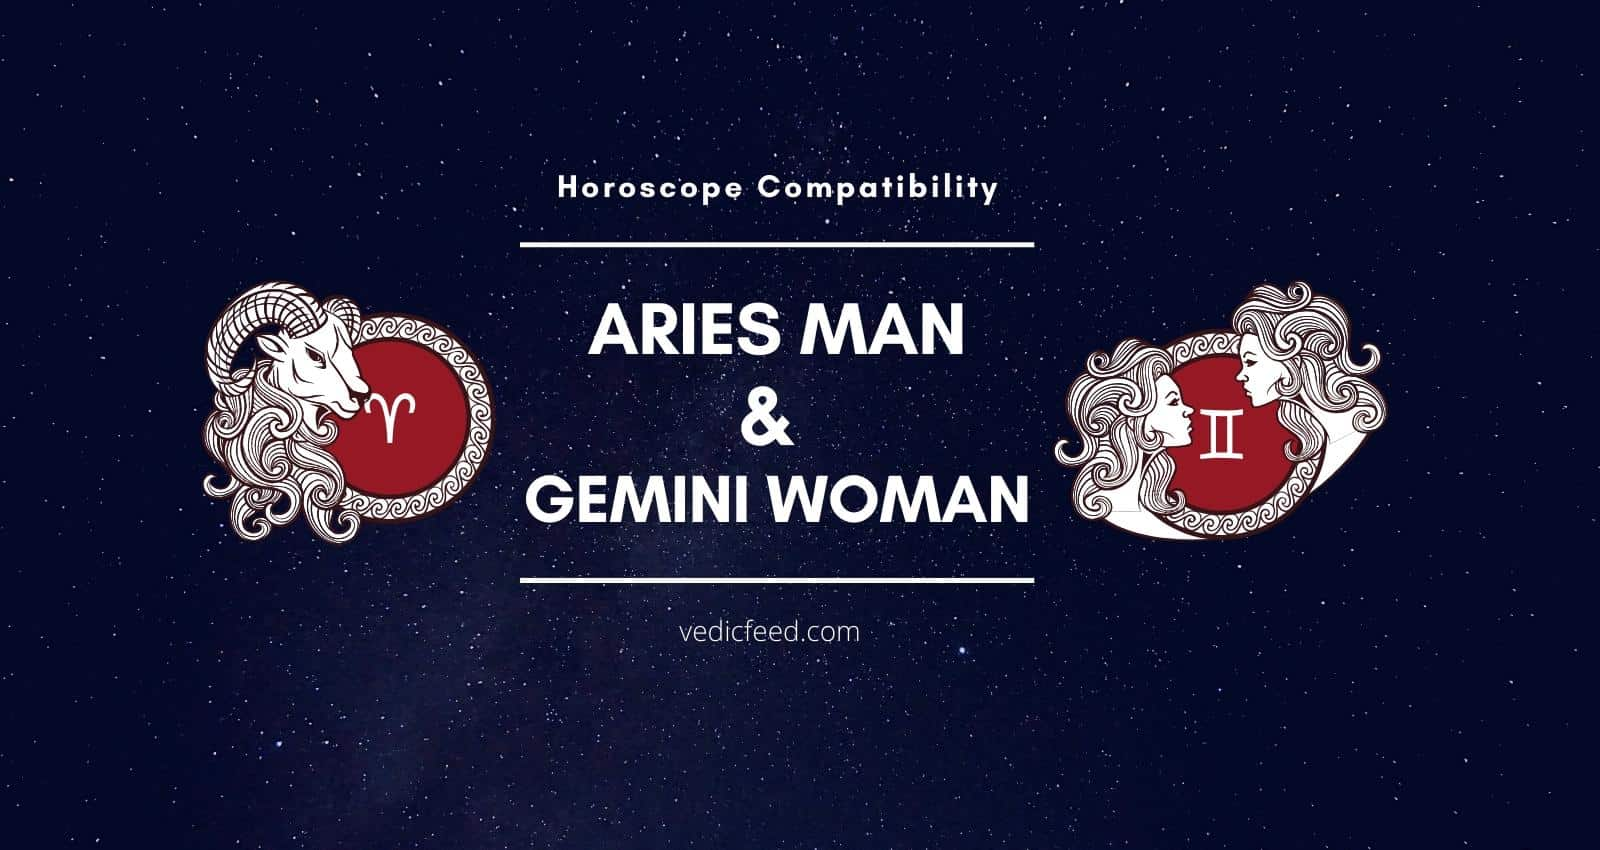 Aries Man and Gemini Woman Compatibility